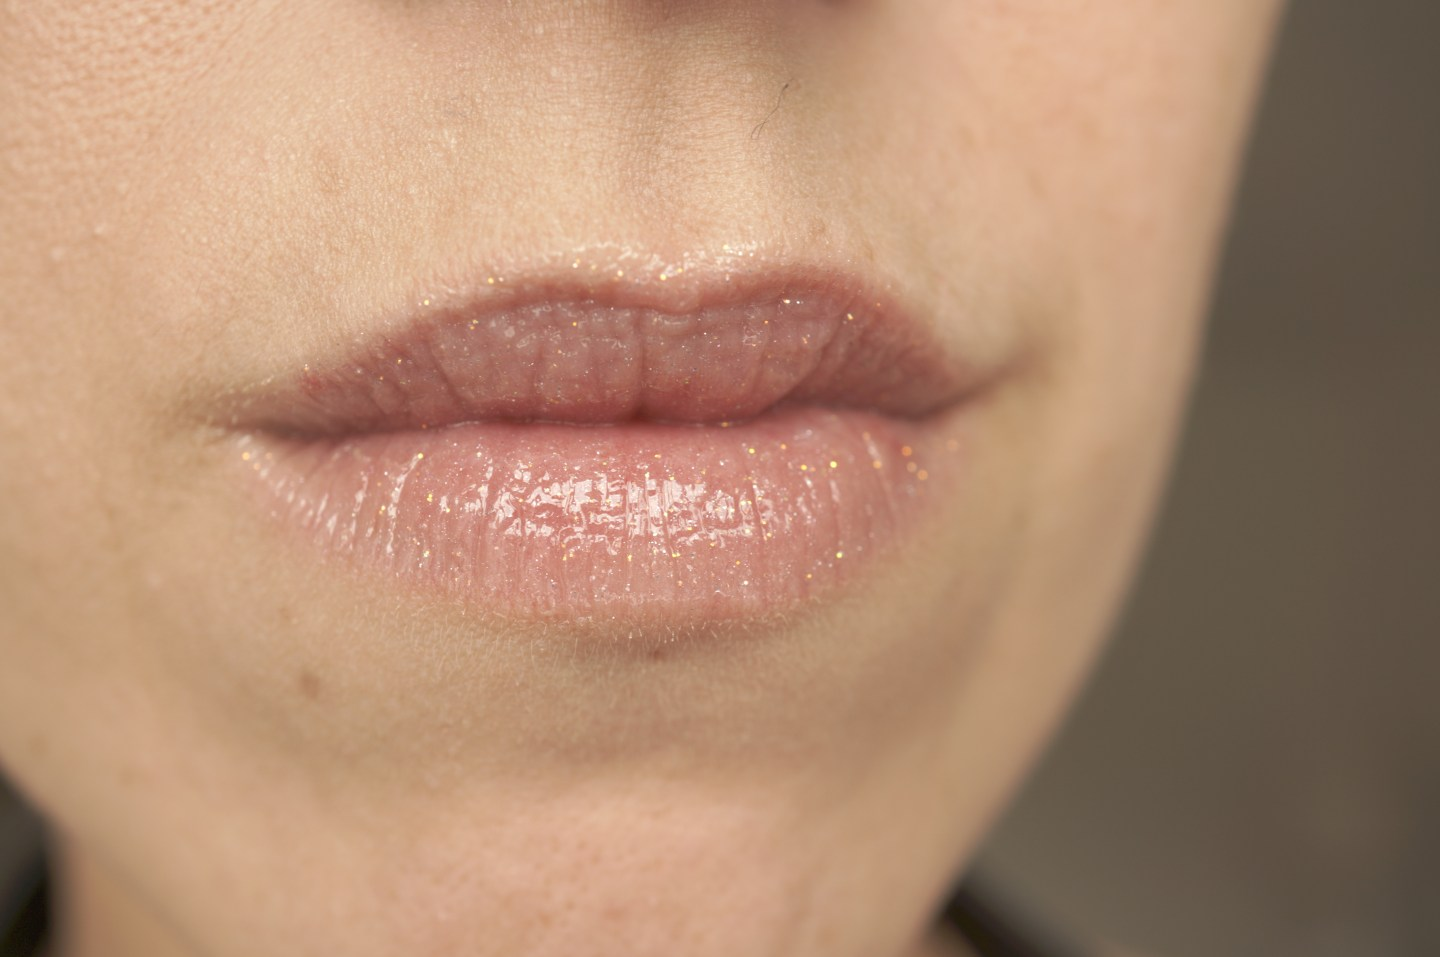 Lipgloss review